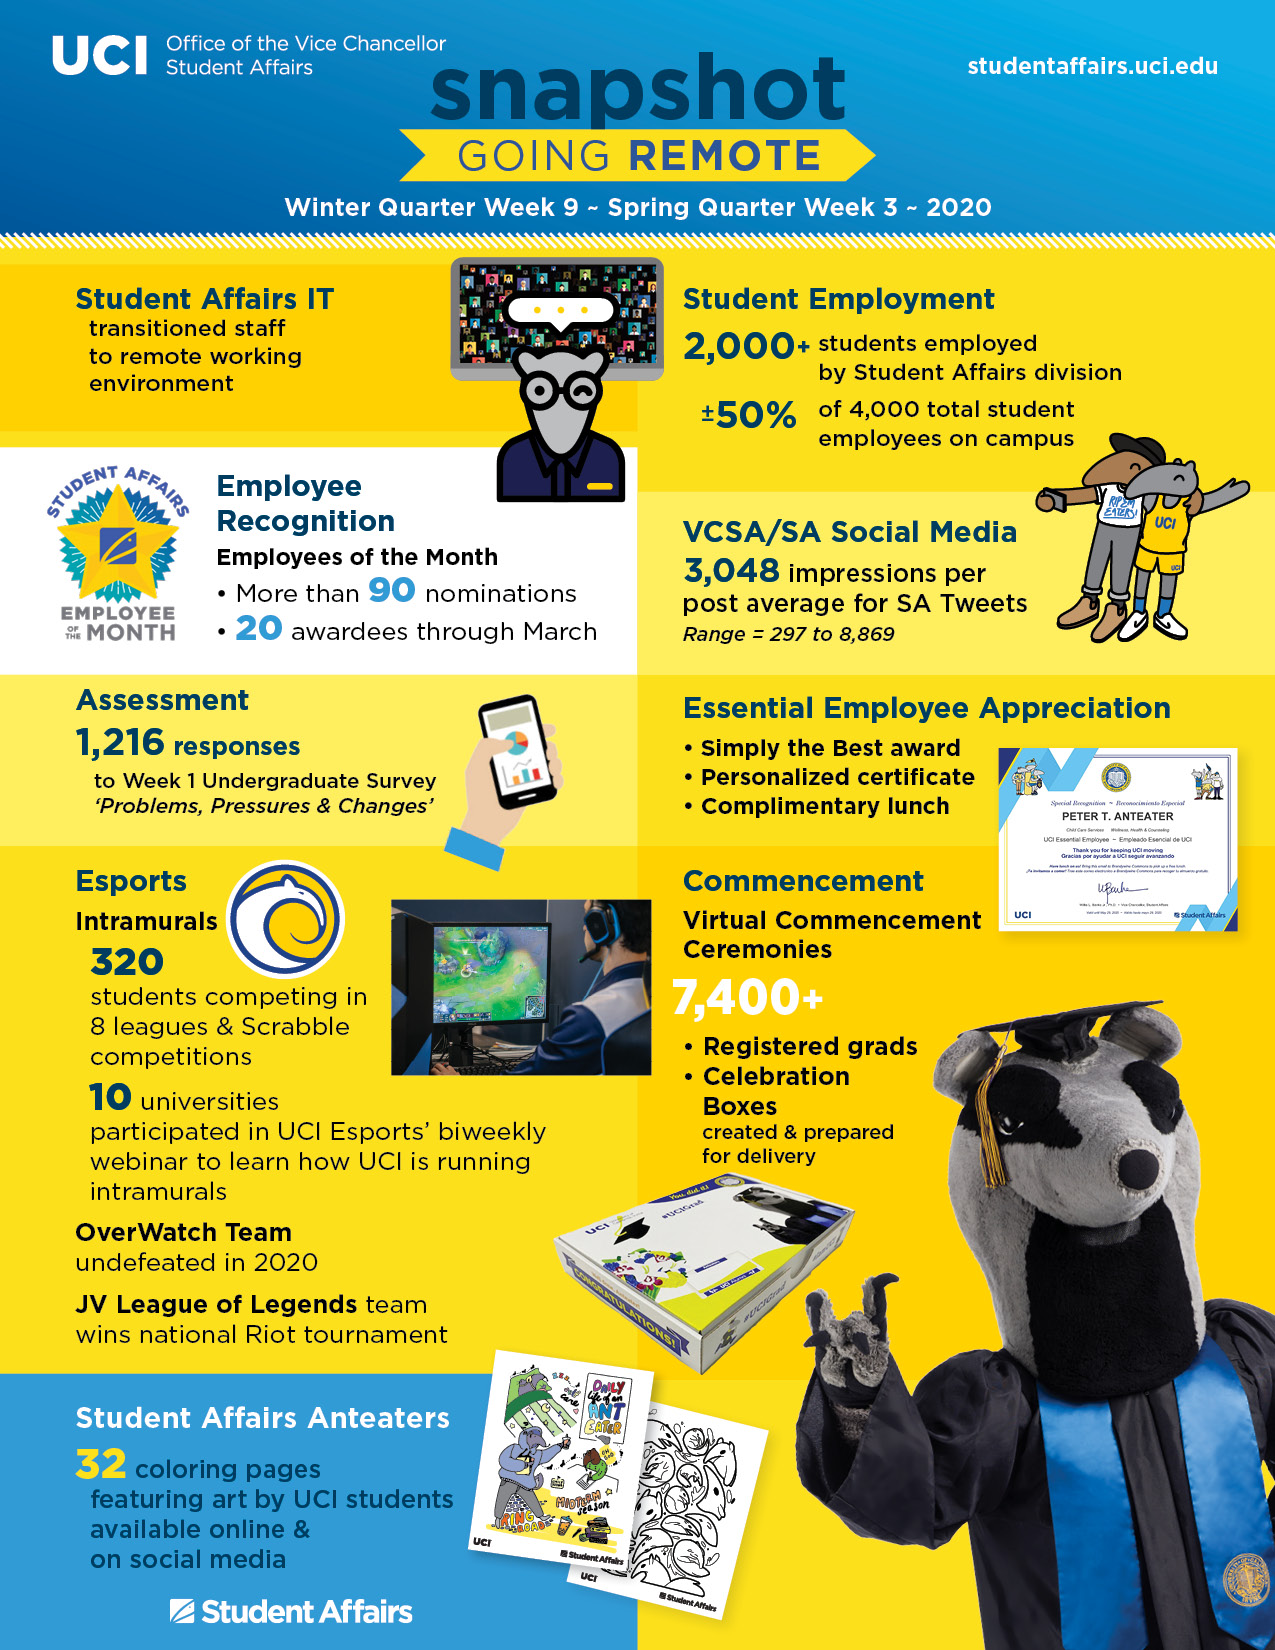 Office of the Vice Chancellor, Student Affairs infographic